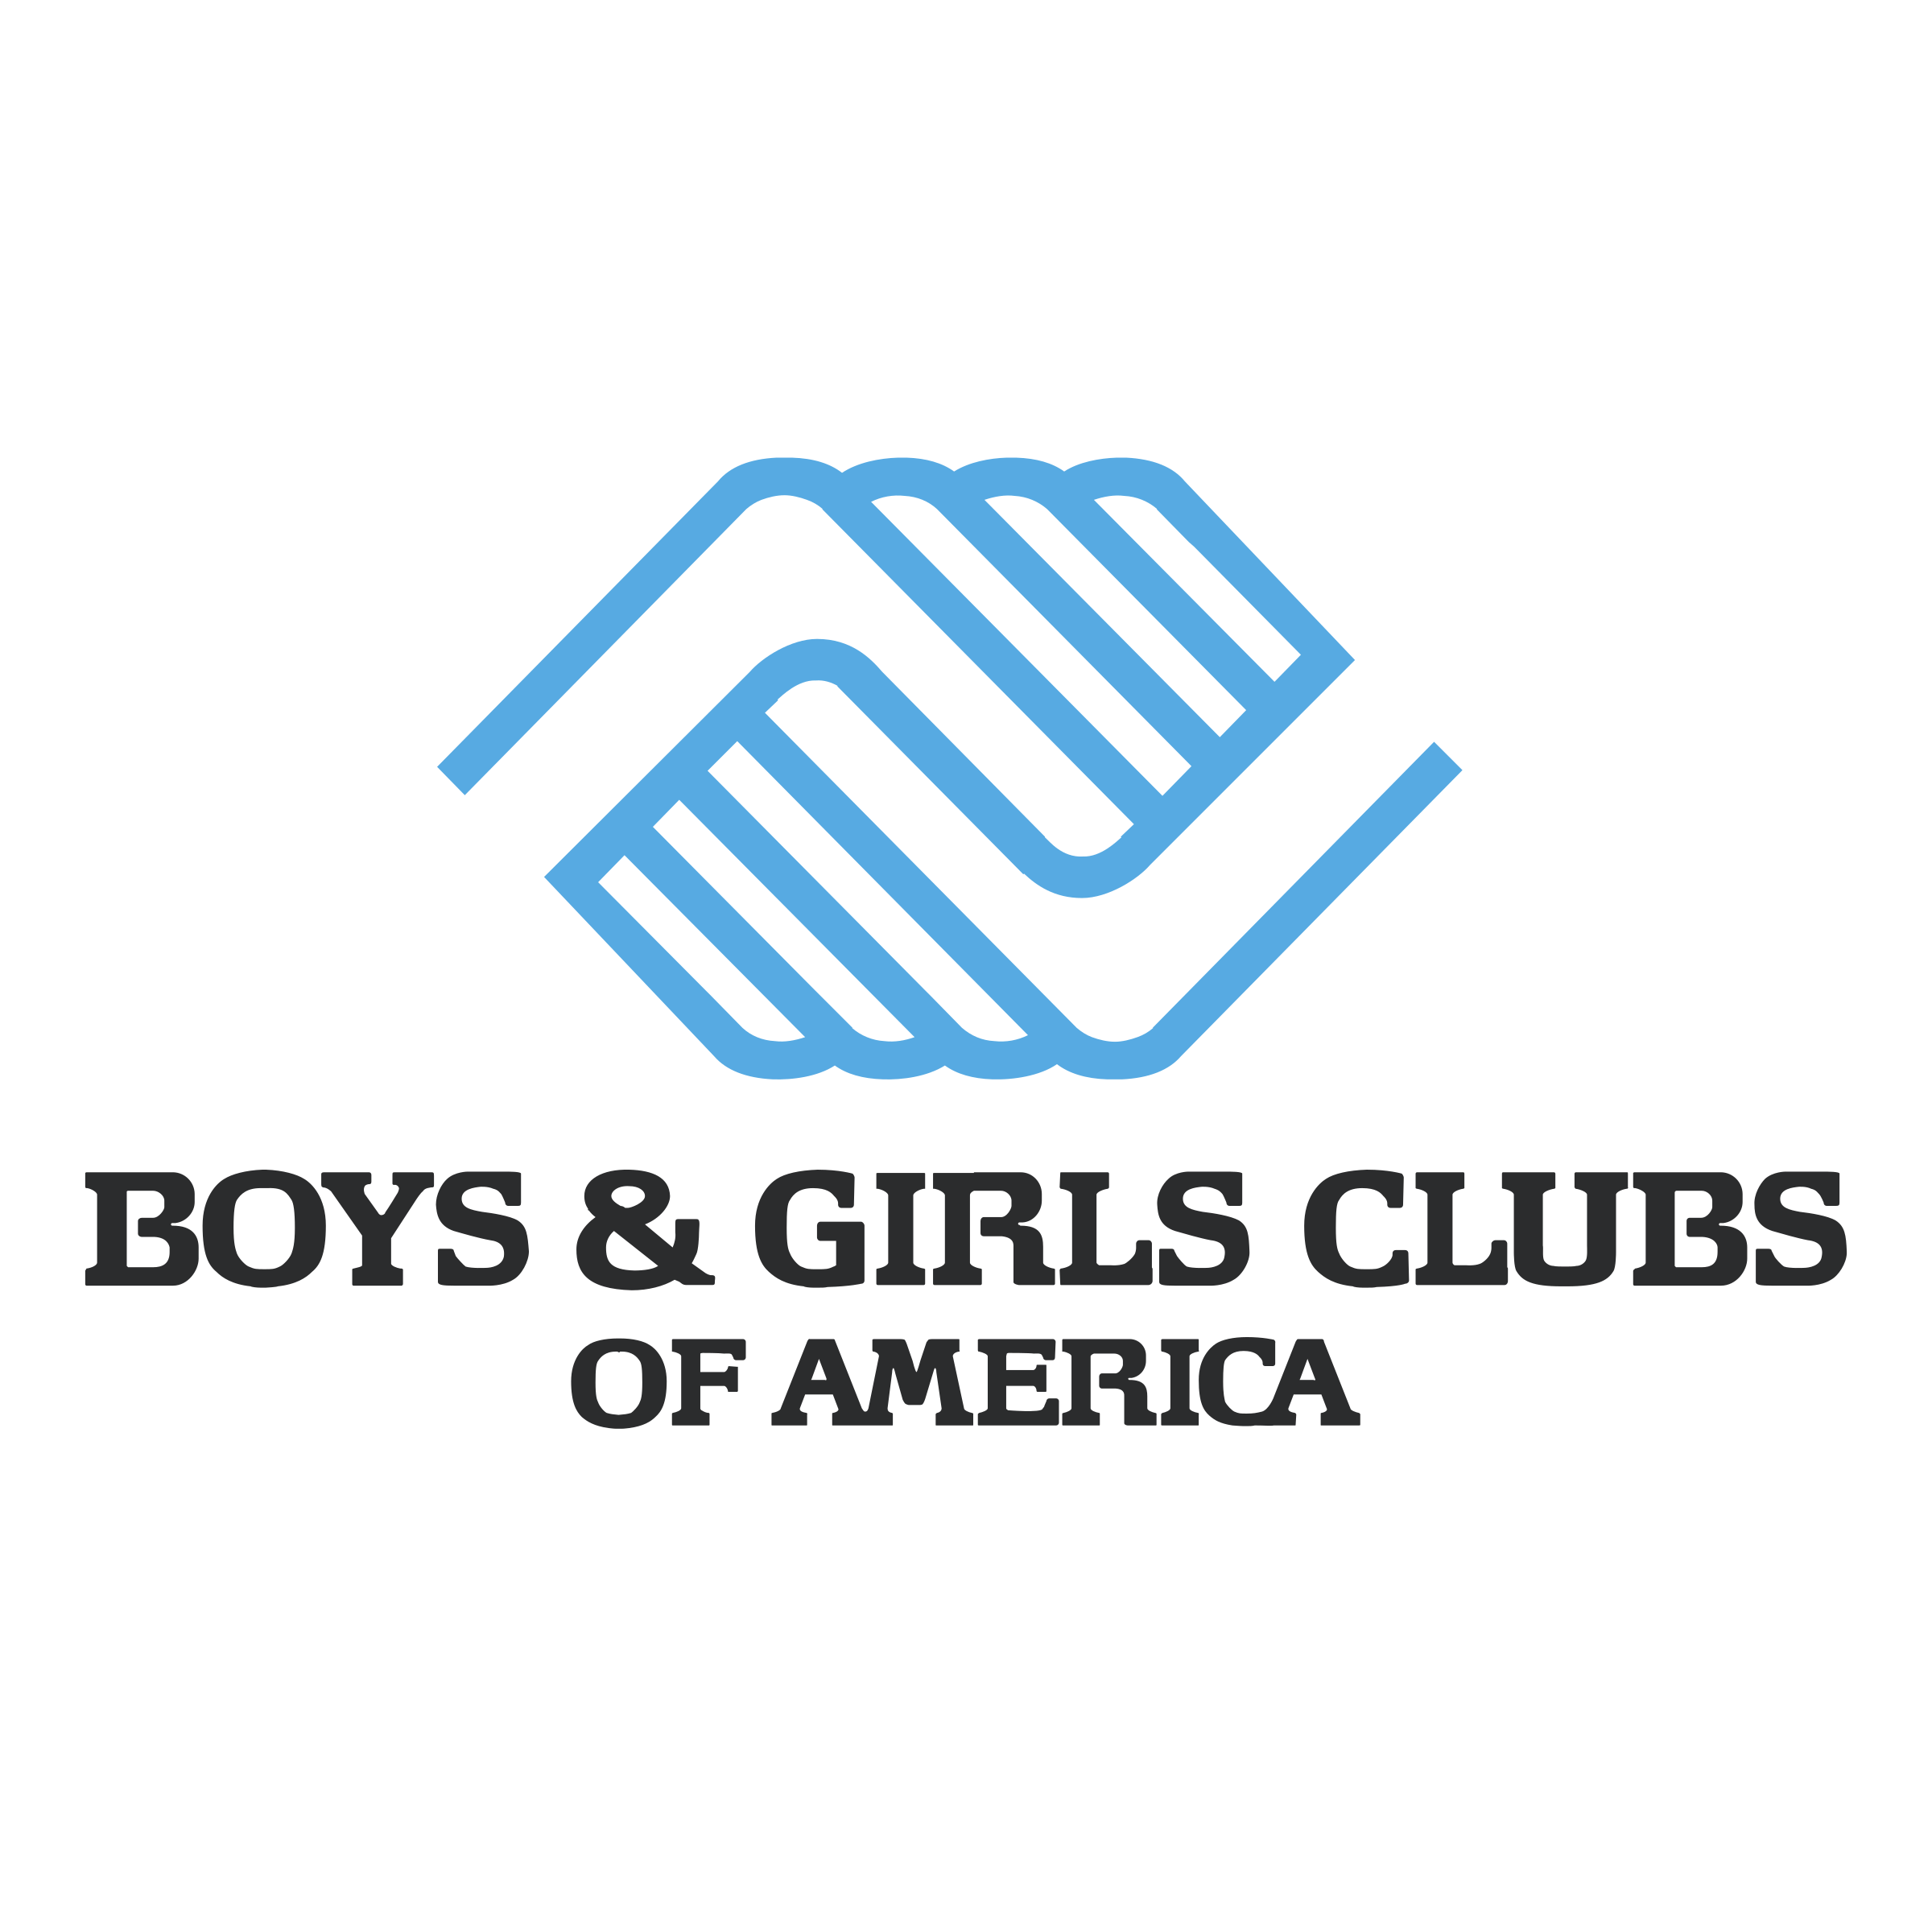 boys-girls-clubs-of-america-01-logo-png-transparent.png